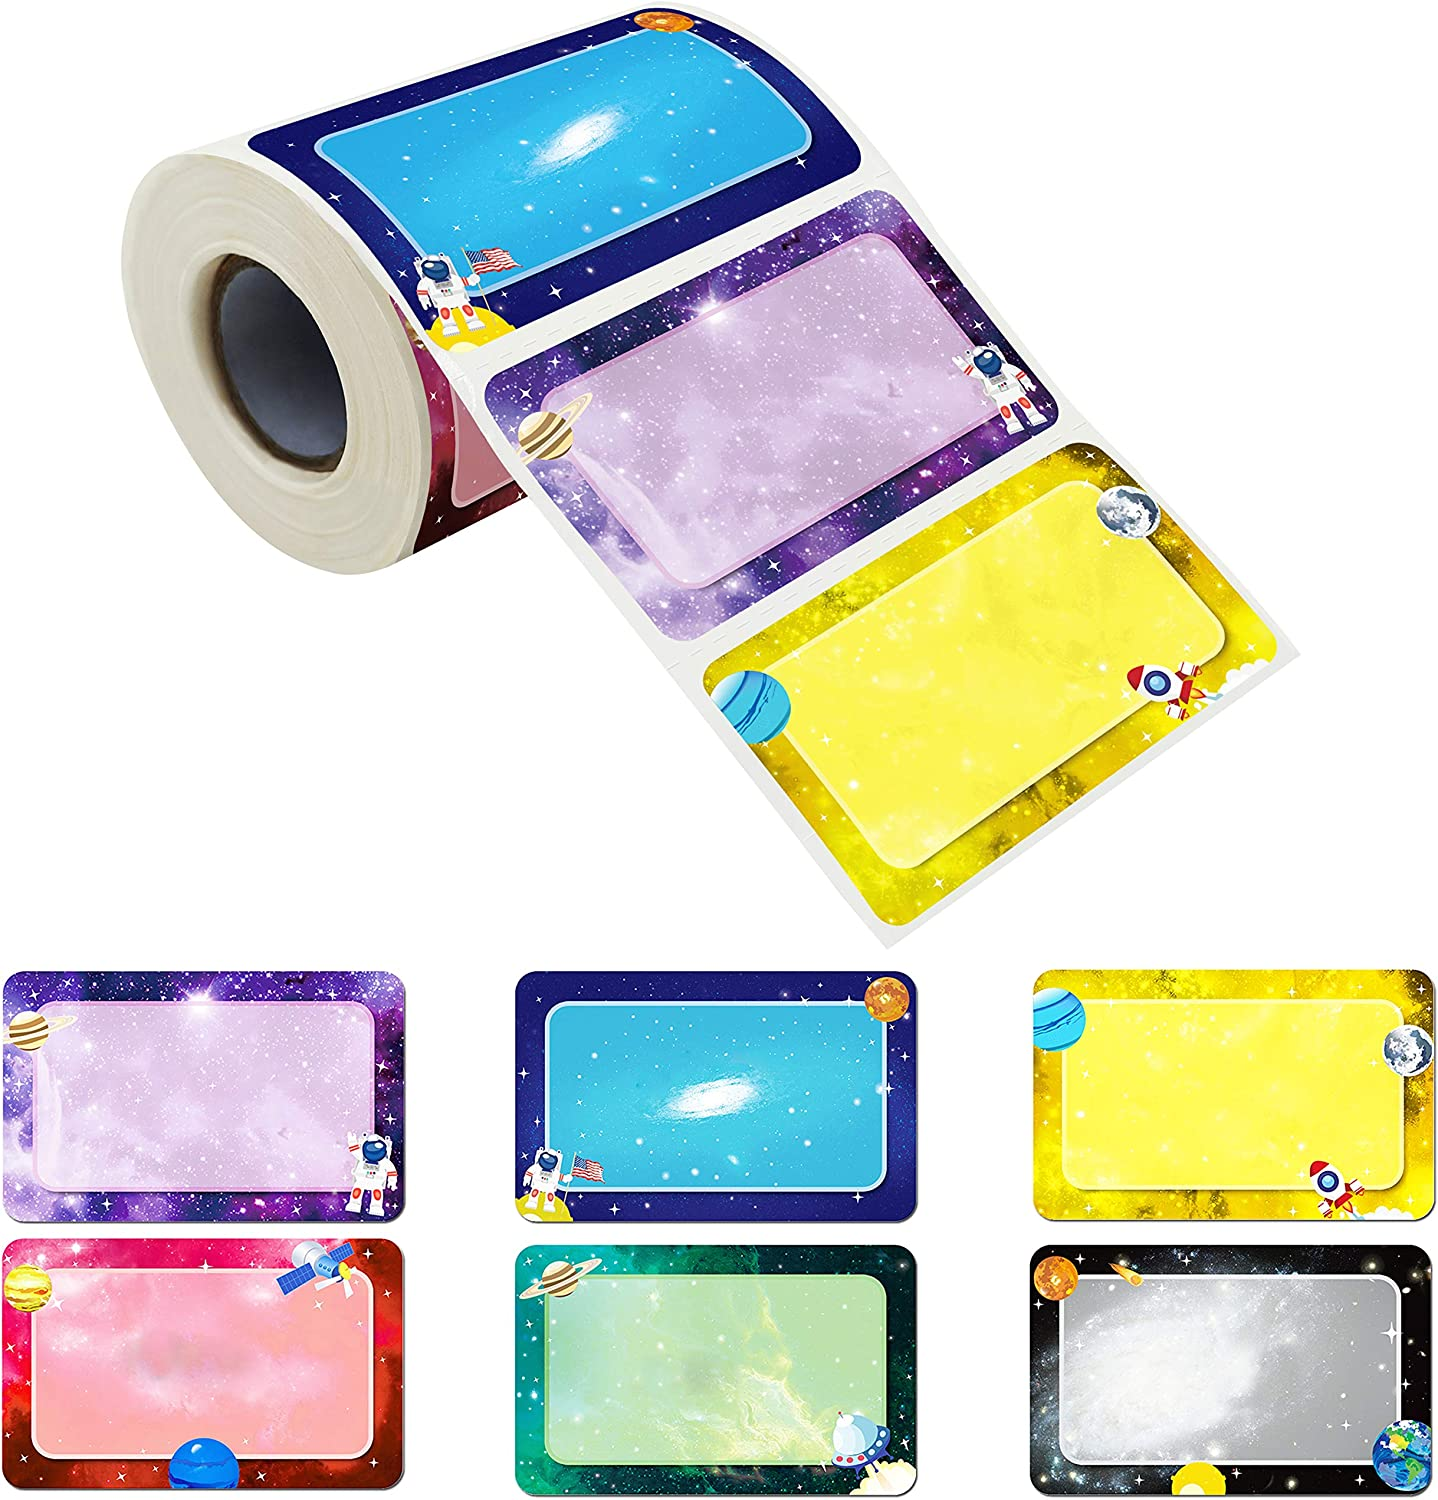 """300 Pcs Name Tag Label Sticker Galaxy-Themed in 6 Designs with Perforated Line for School Office Home (3.5""""x2.2"""" Each) …"""